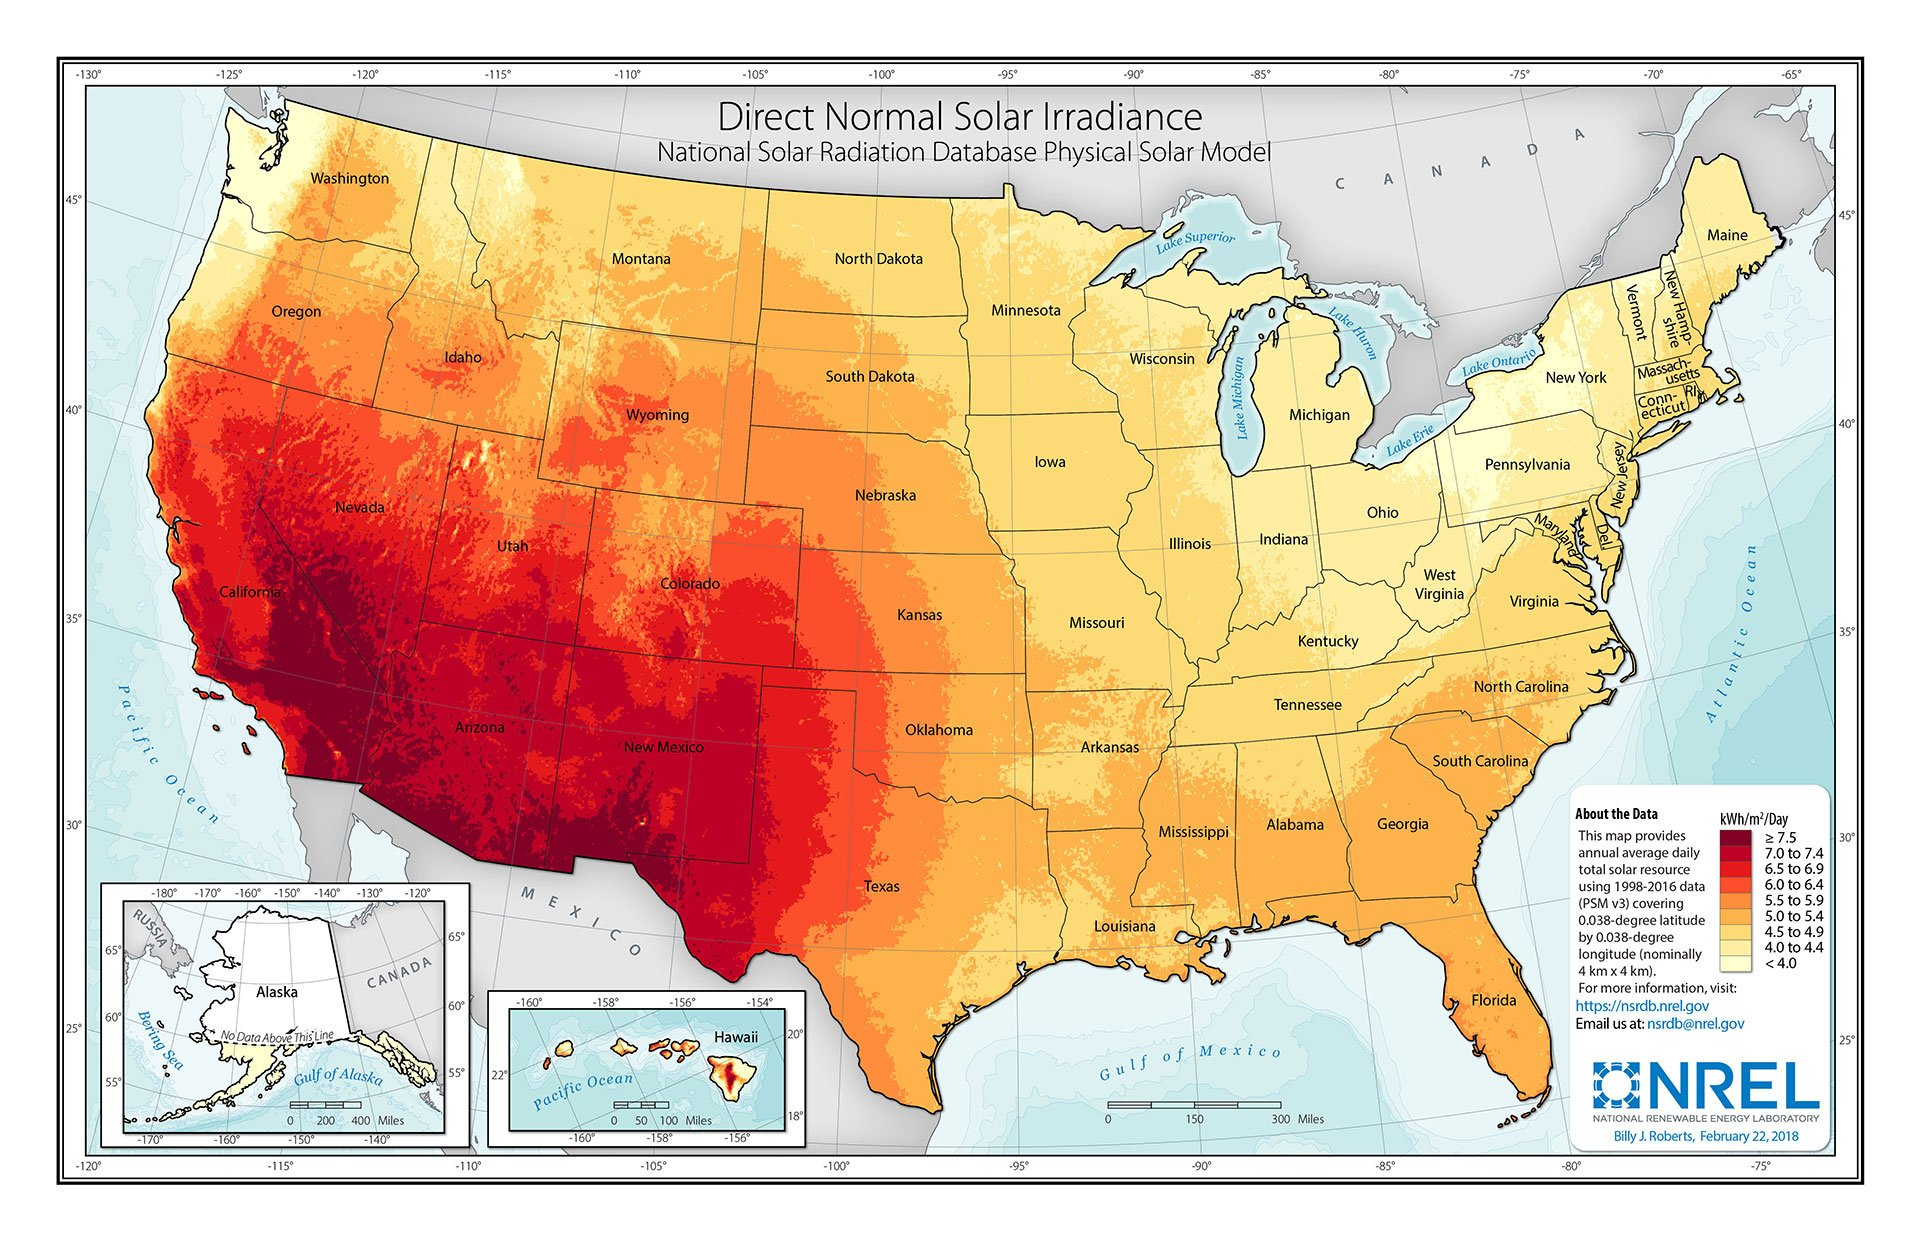 Map showing the United States and solar energy data as direct normal solar irradiance